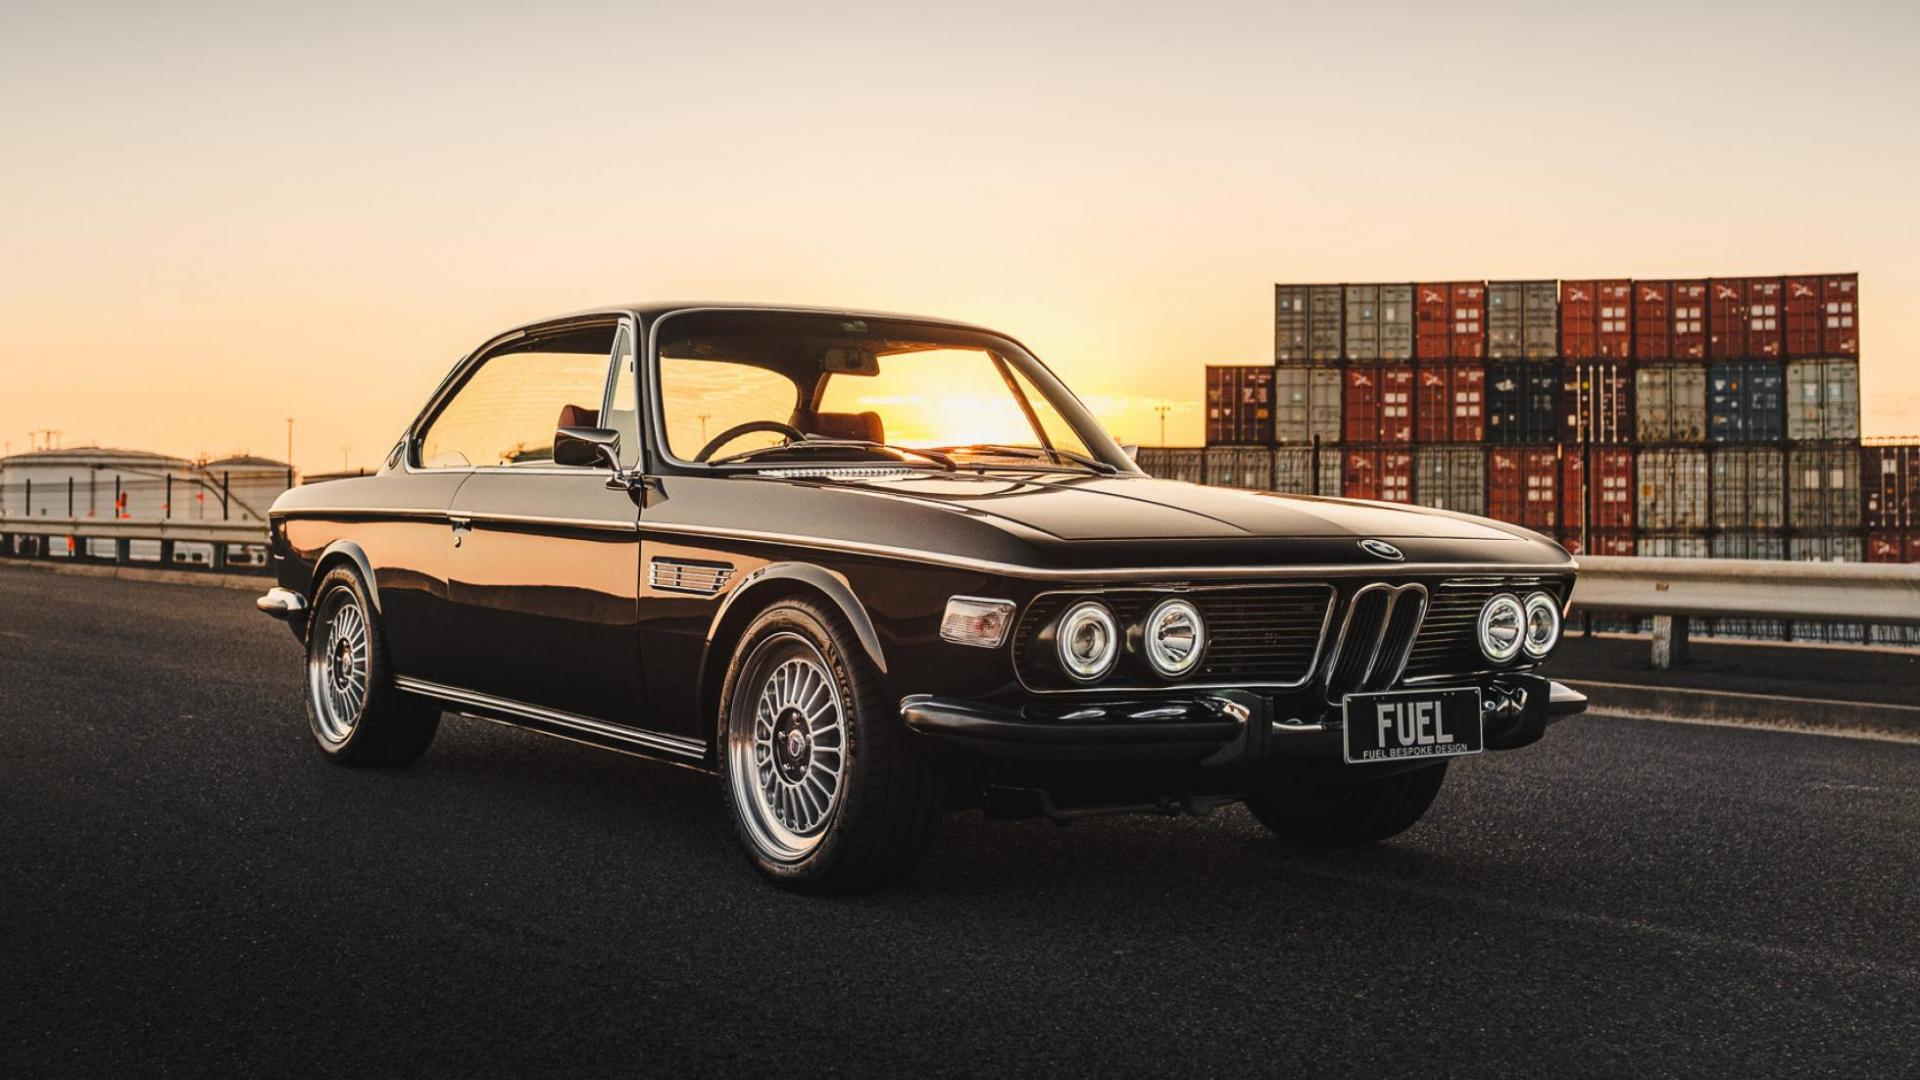 BMW 2800 CS met M3-motor is fantastisch